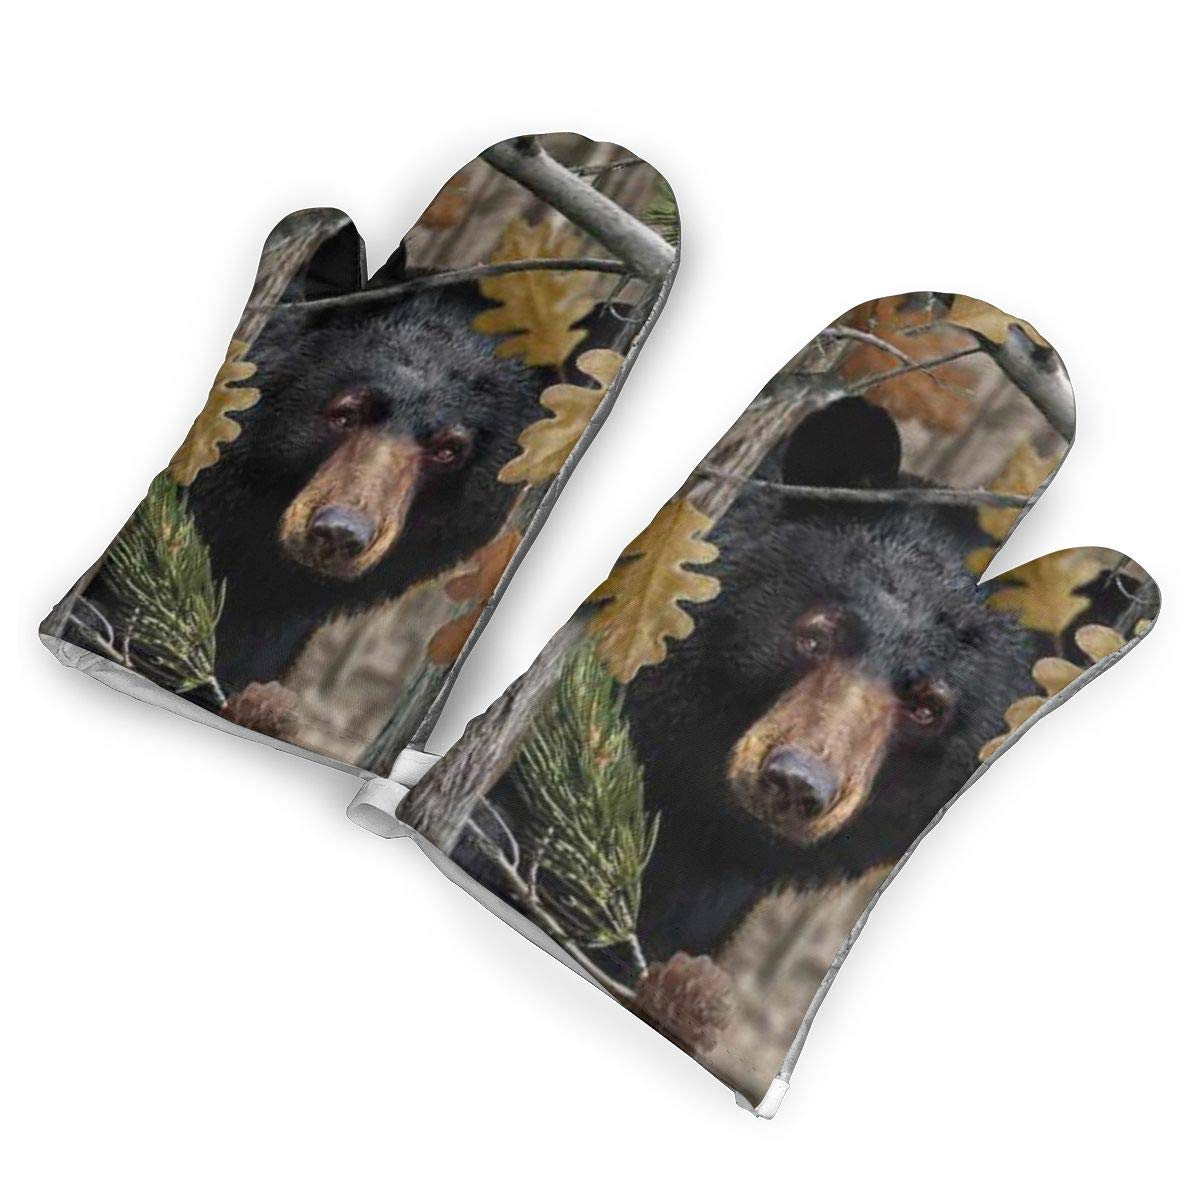 Feederm Camo Bear Oven Mitts,Professional Heat Resistant Microwave Oven Insulation Thickening Gloves Baking Pot Mittens Soft Inner Lining Kitchen Cooking